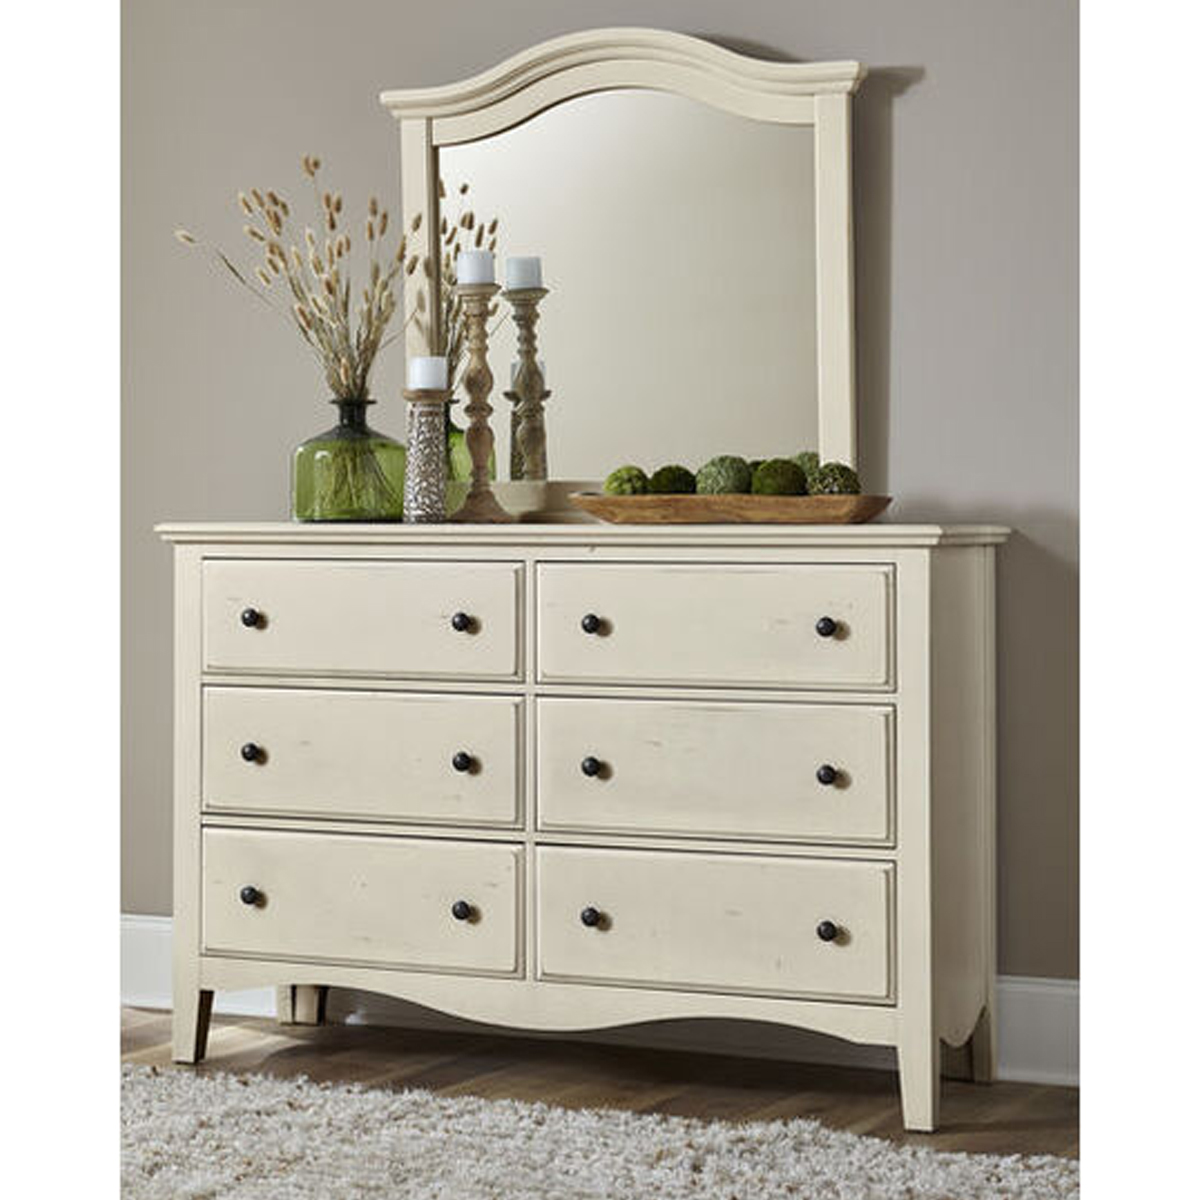 Picture of CASHIERS SHELL 6 DRW DRESSER